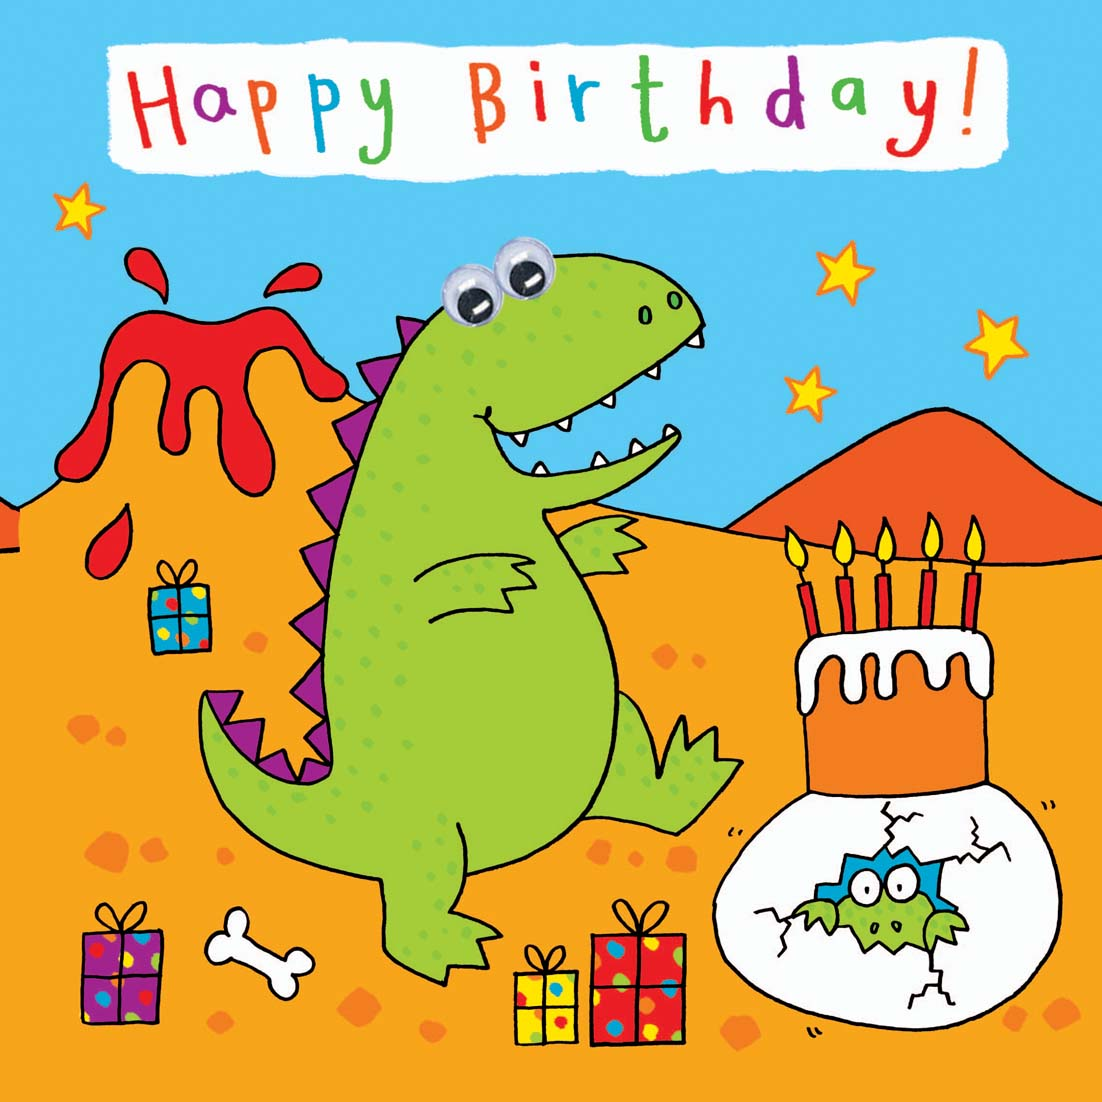 Kids Cards Kids Birthday Cards – Birthday Cards for Kids